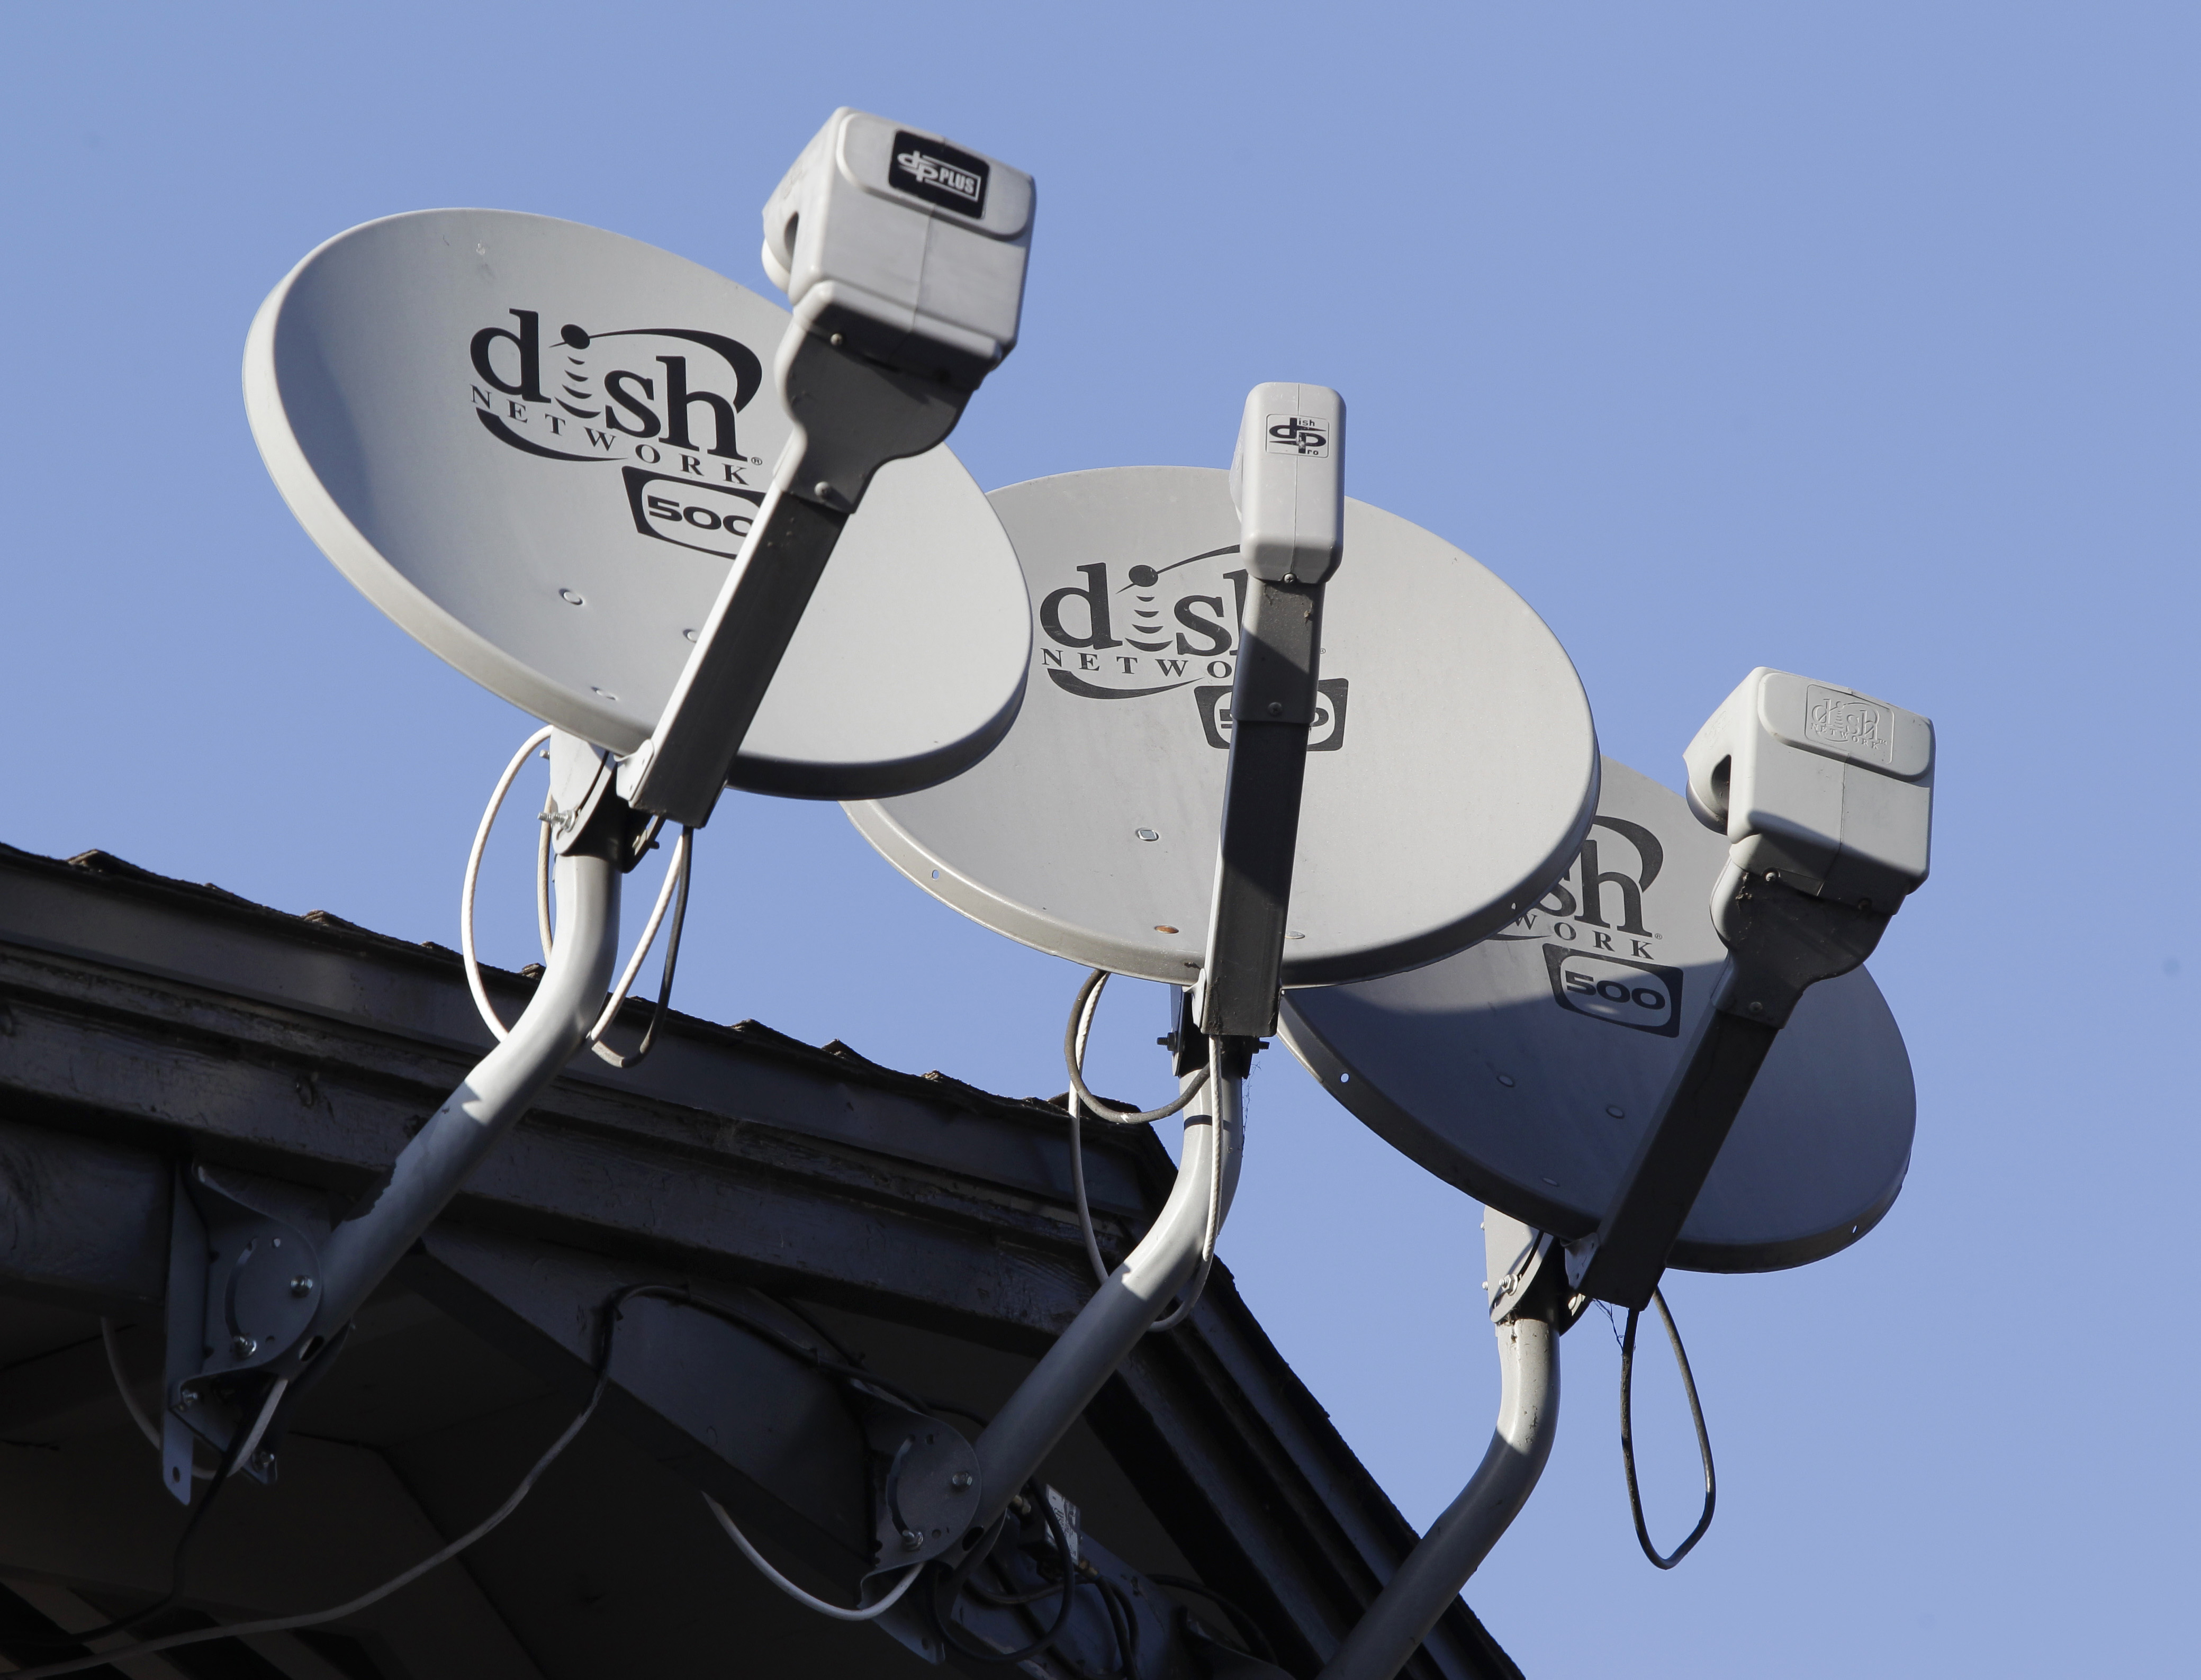 Photo: Dish Network Satellite Dishes On Rooftop